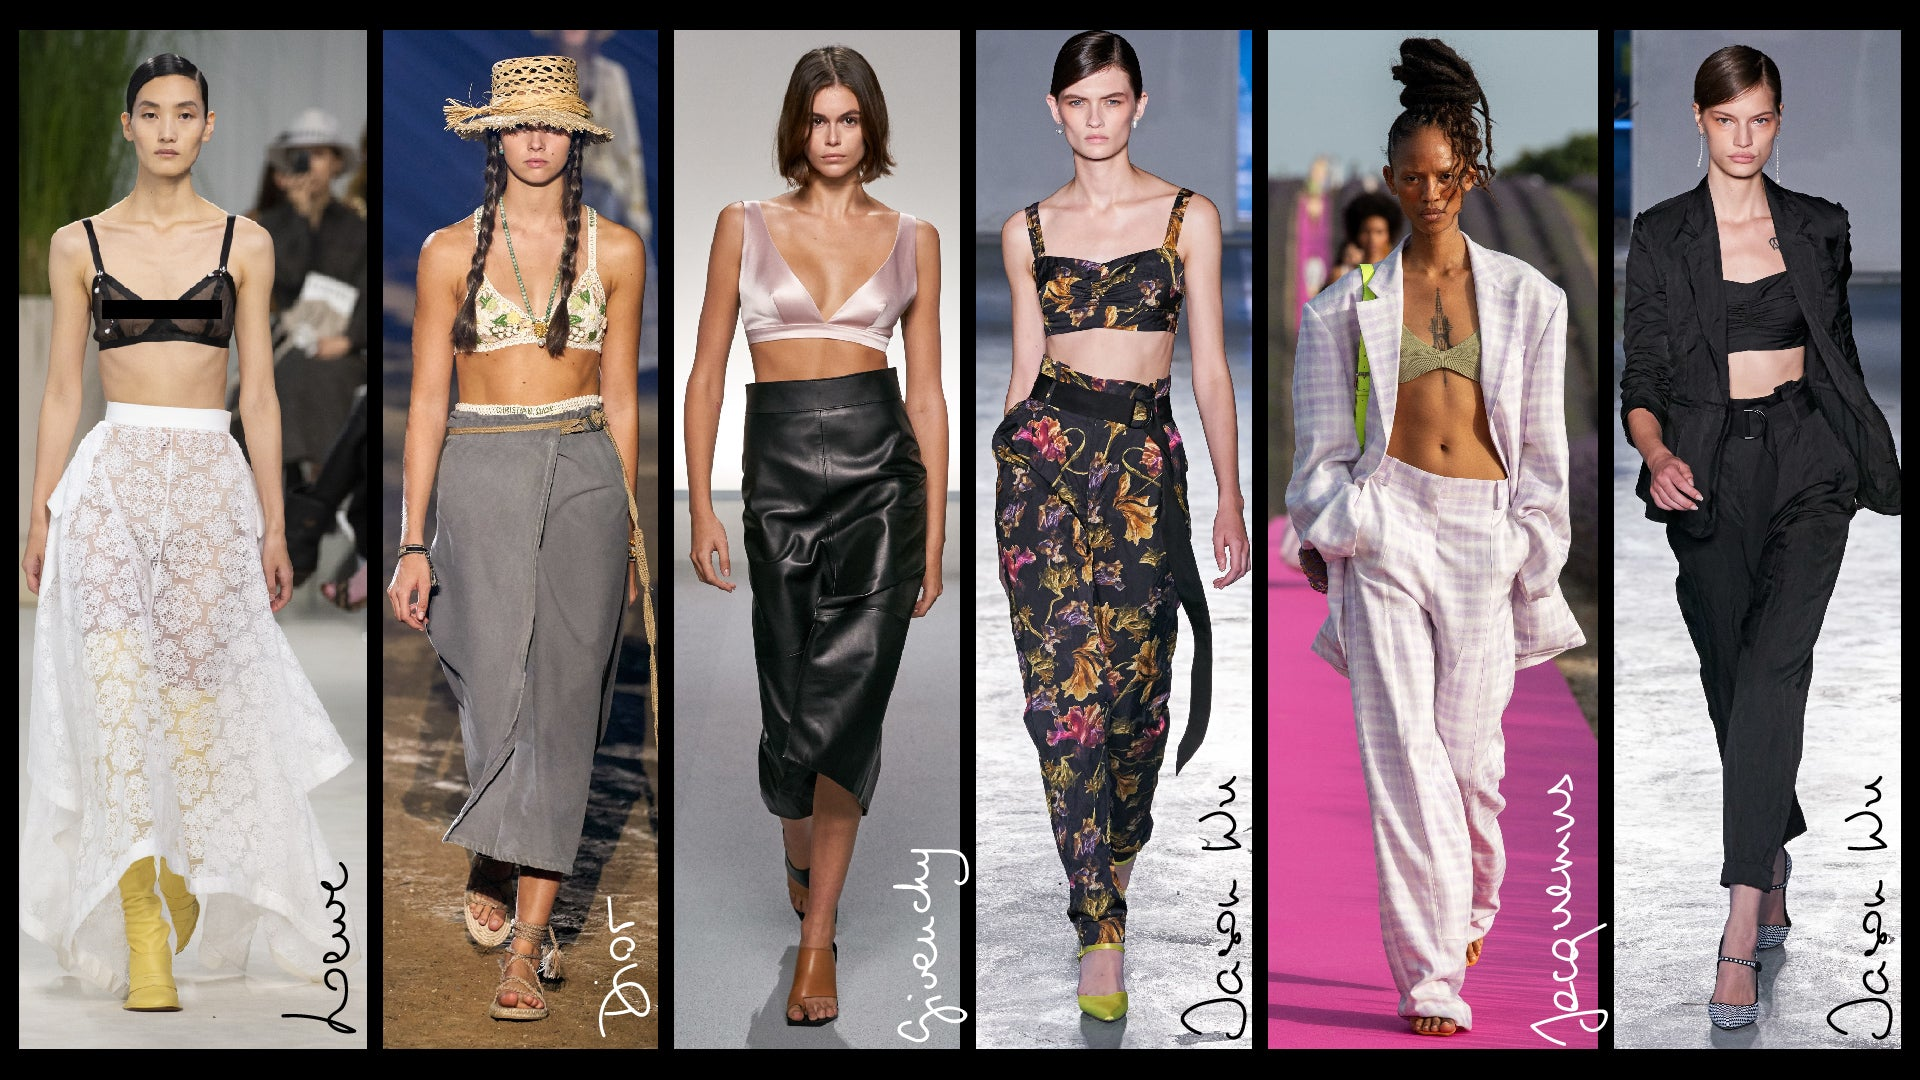 Justine Leconte fashion trends 2020 bra tops